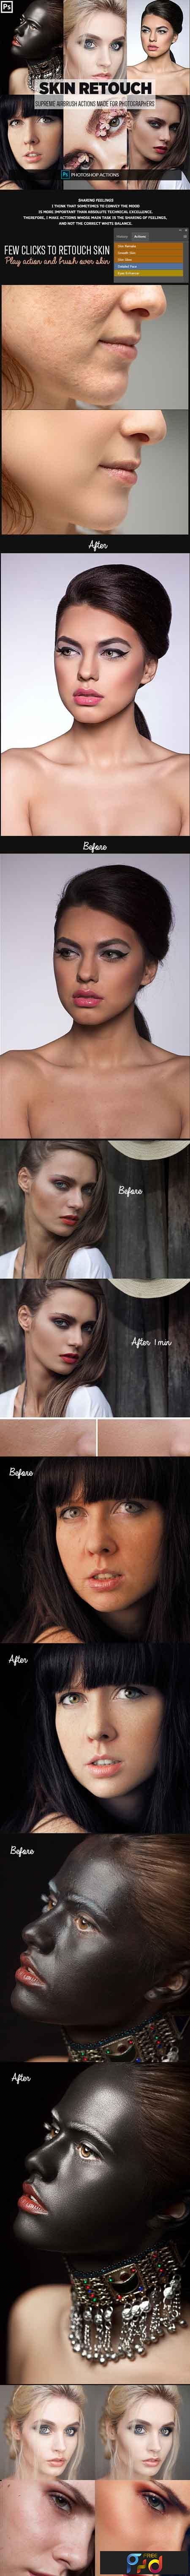 Easy Skin Retouch Photoshop Actions 23160423 - FreePSDvn